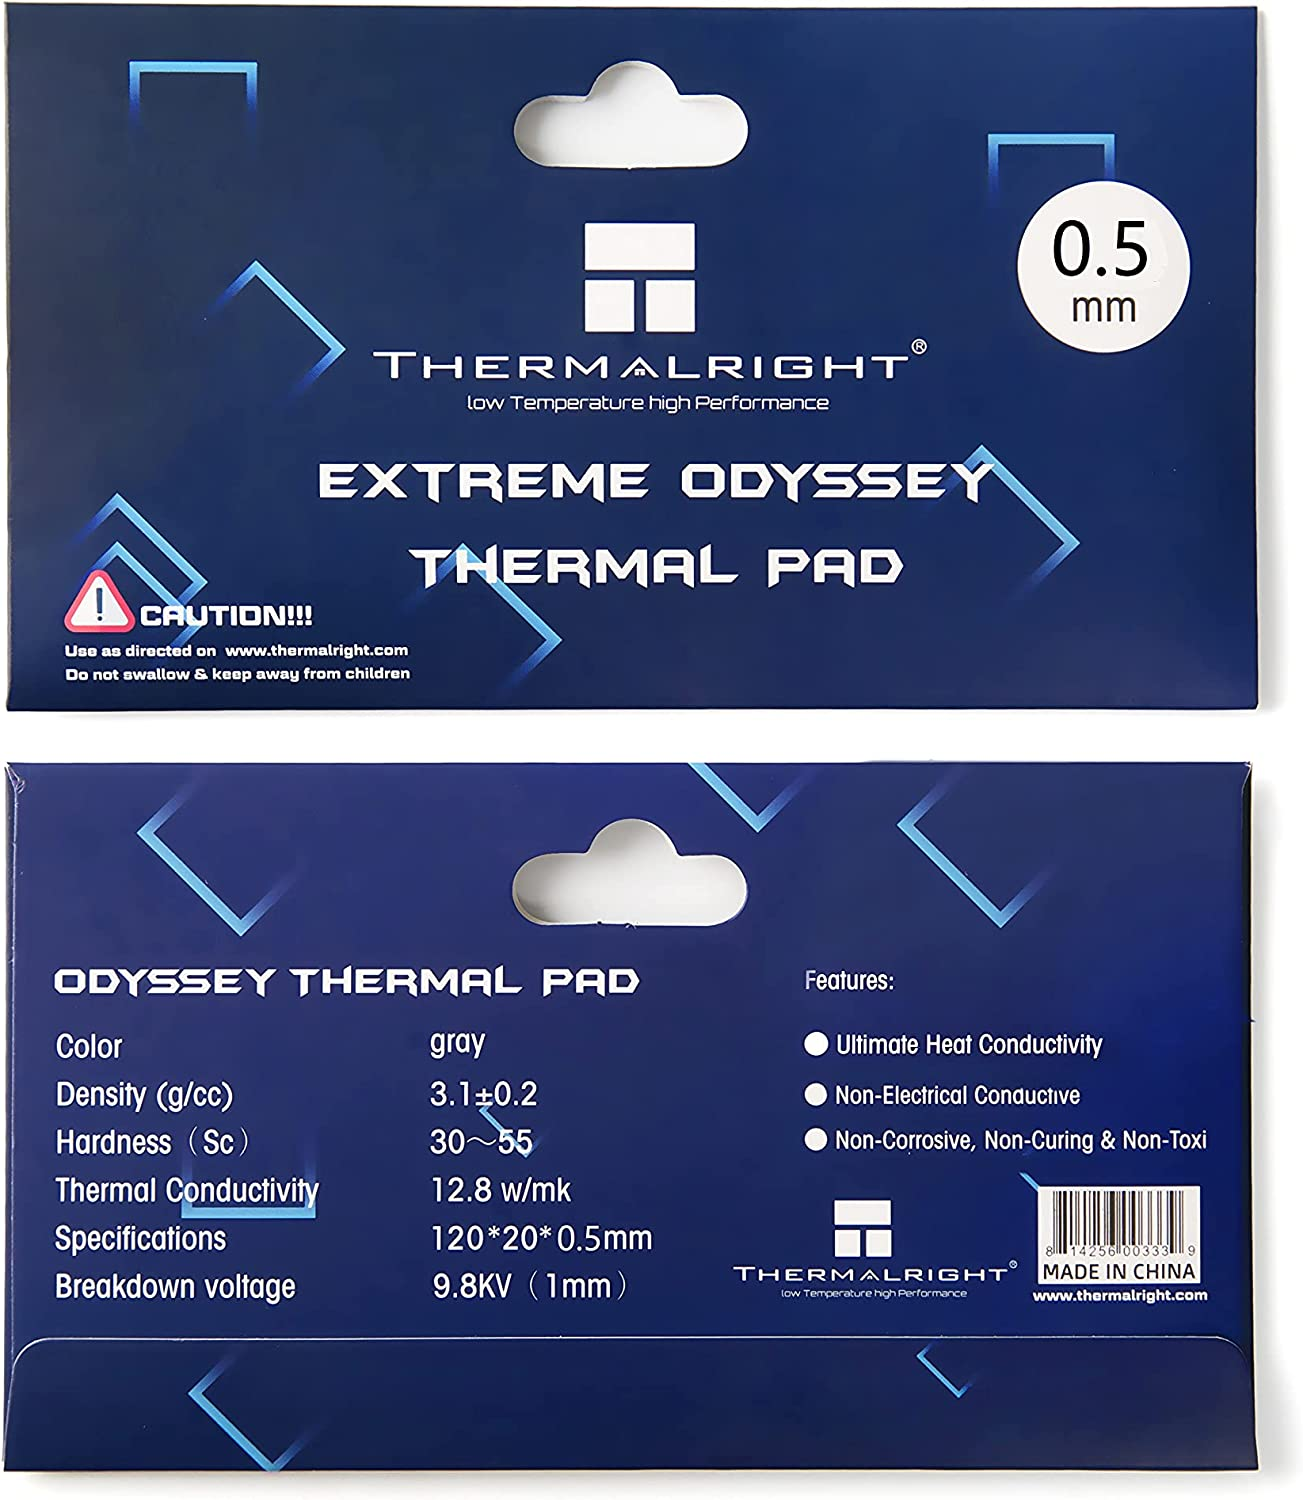 Thermalright Odyssey Thermal Pad Popular 12.8 W mK R Heat Quality inspection 120x20x0.5mm